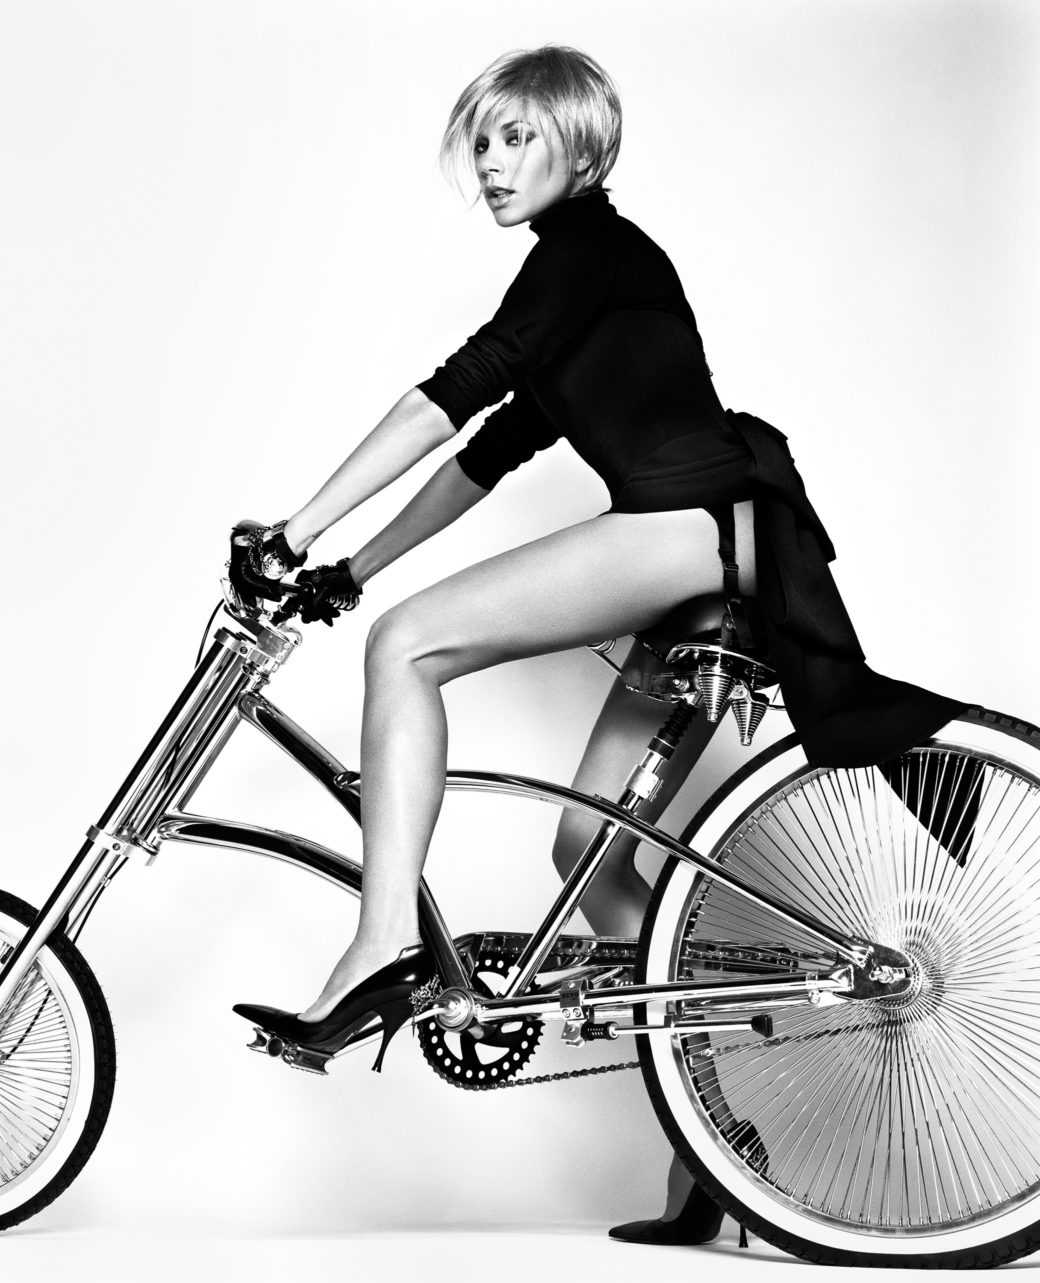 A black-and-white high fashion style photo of a figure riding a bike